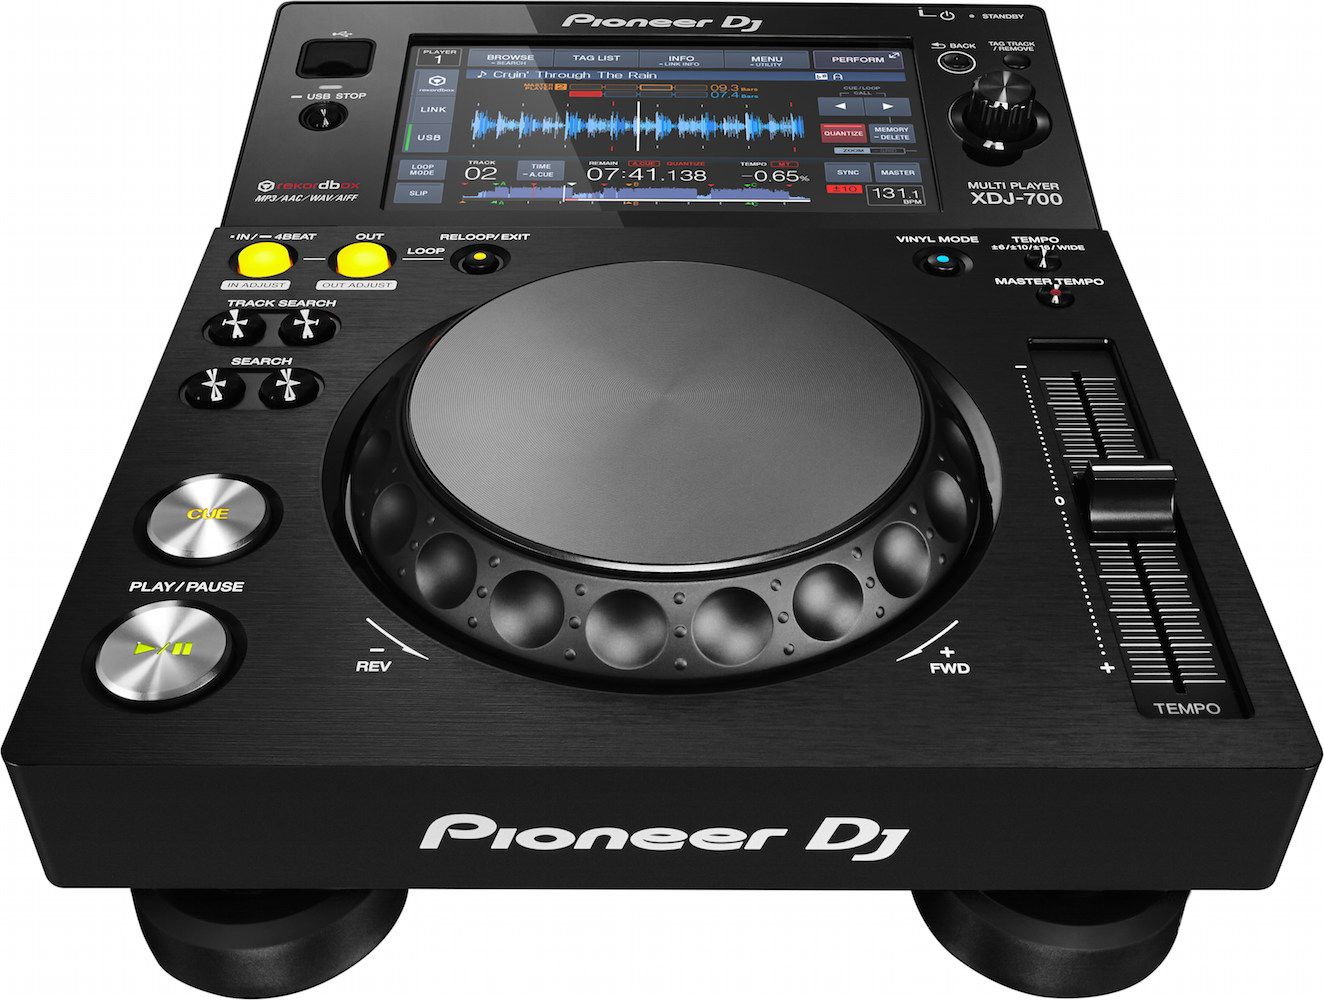 xdj-700-front-png